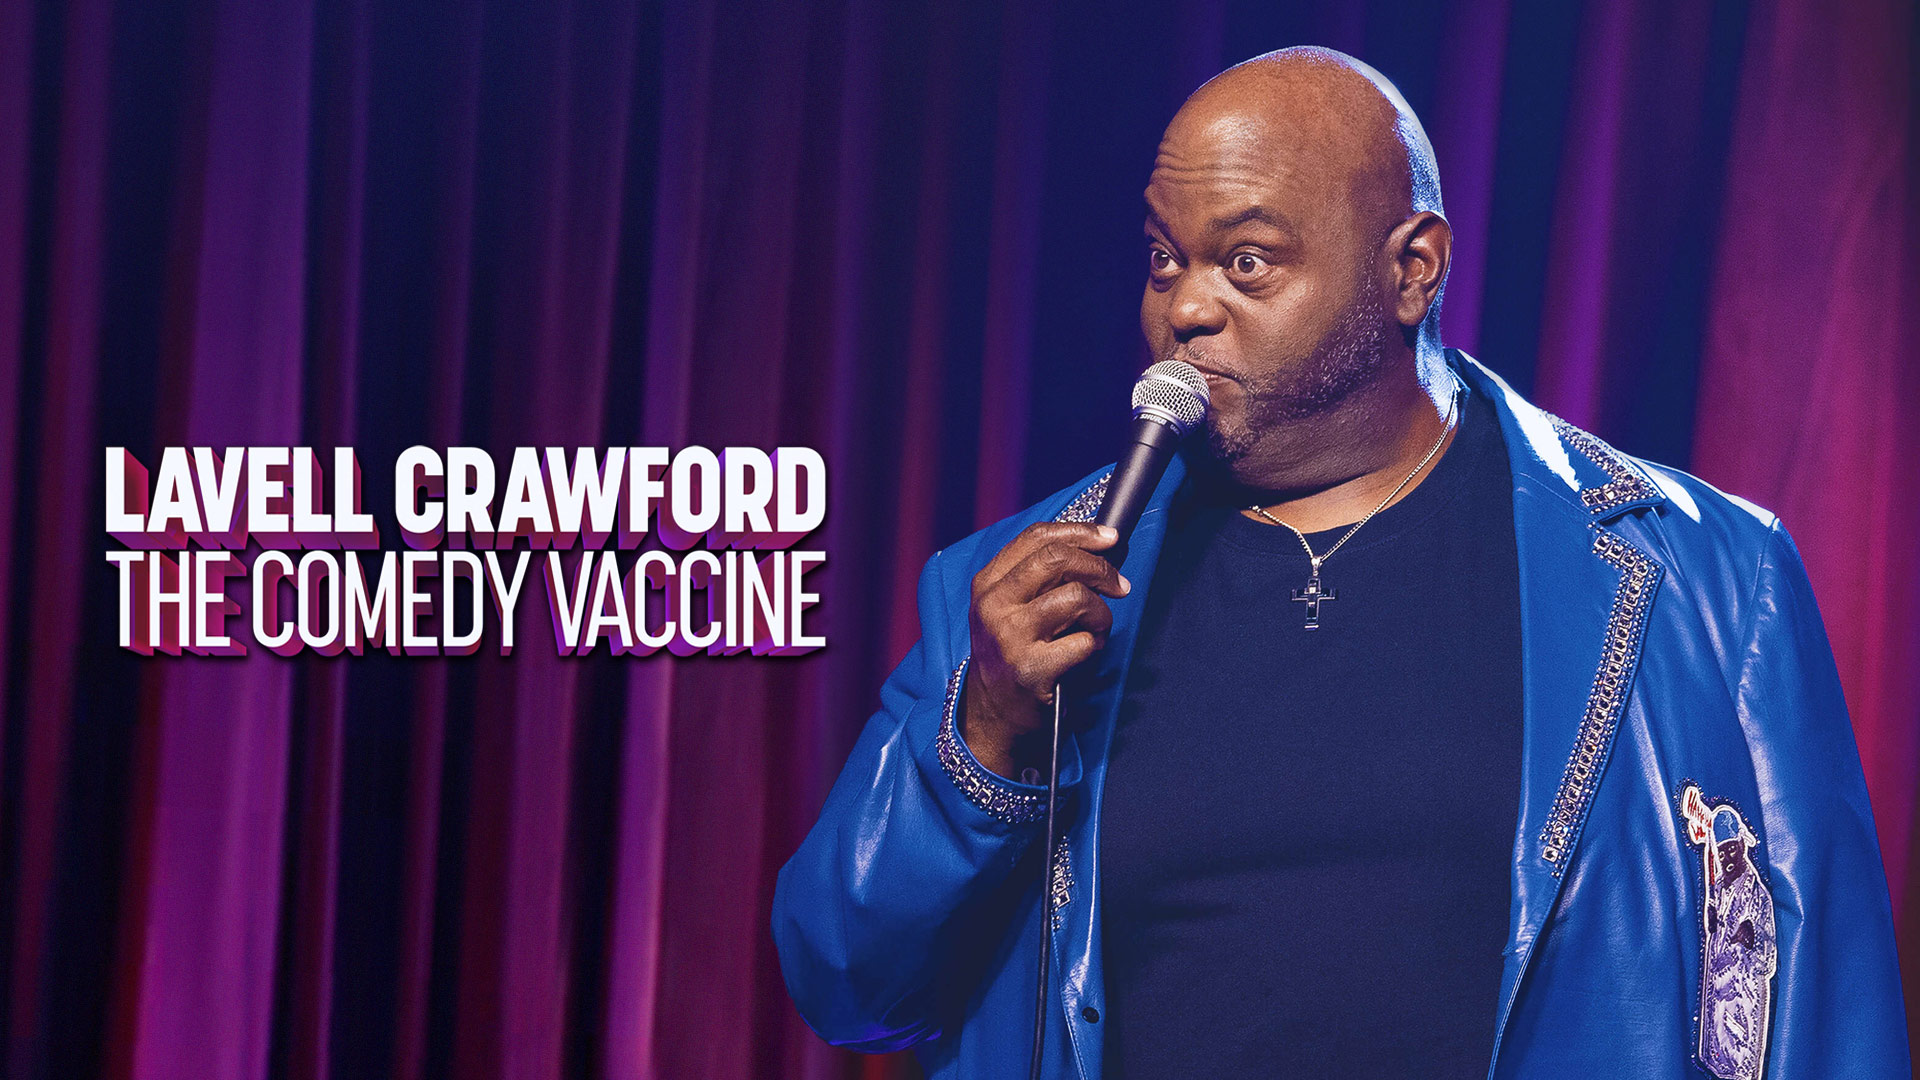 Lavell Crawford: The Comedy Vaccine